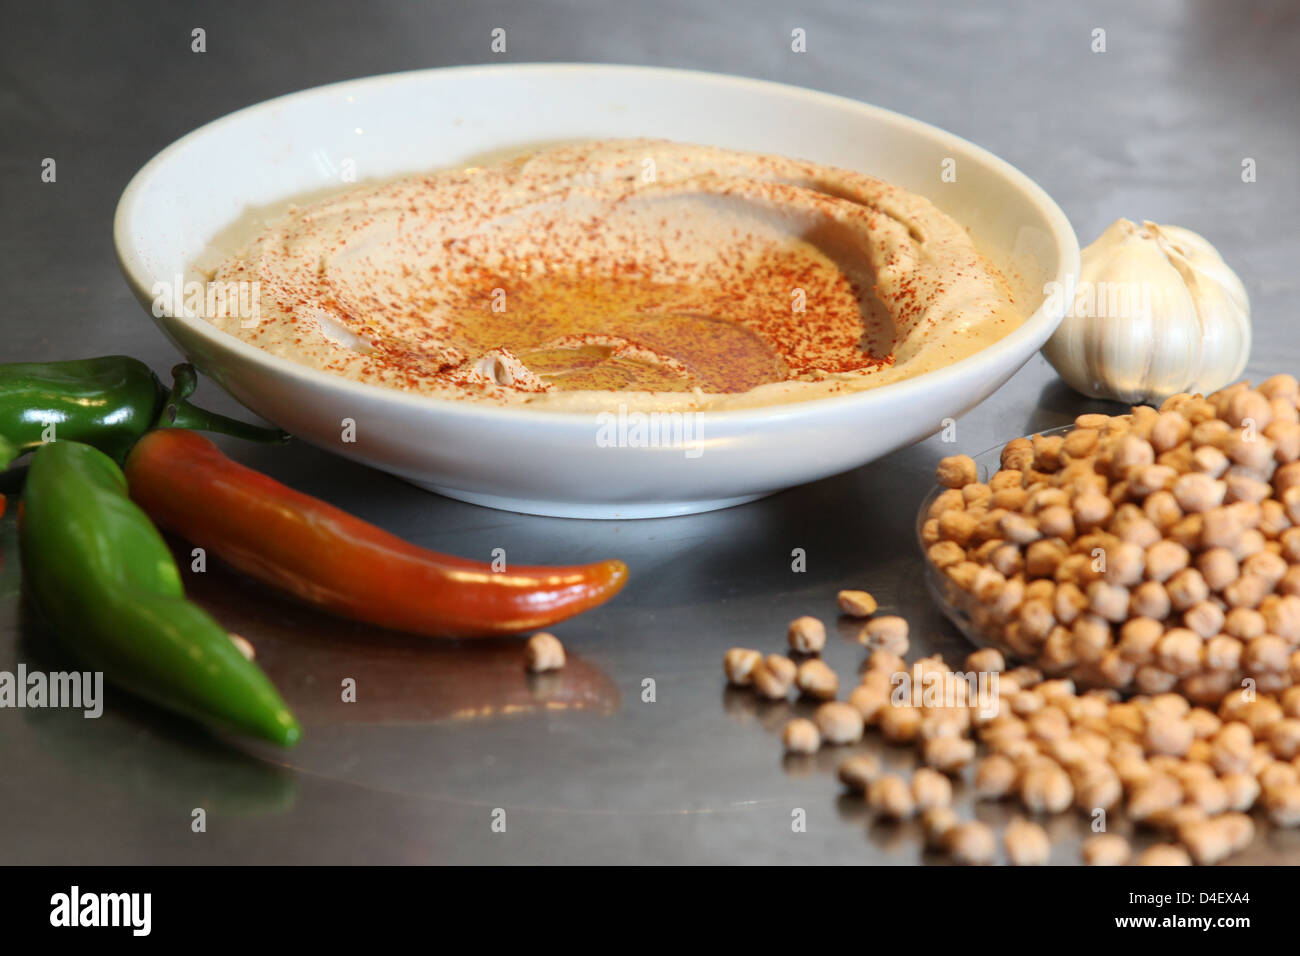 Hummus. A Levantine Arab dip or spread made from cooked, mashed chickpeas, blended with tahini, olive oil, lemon - Stock Image